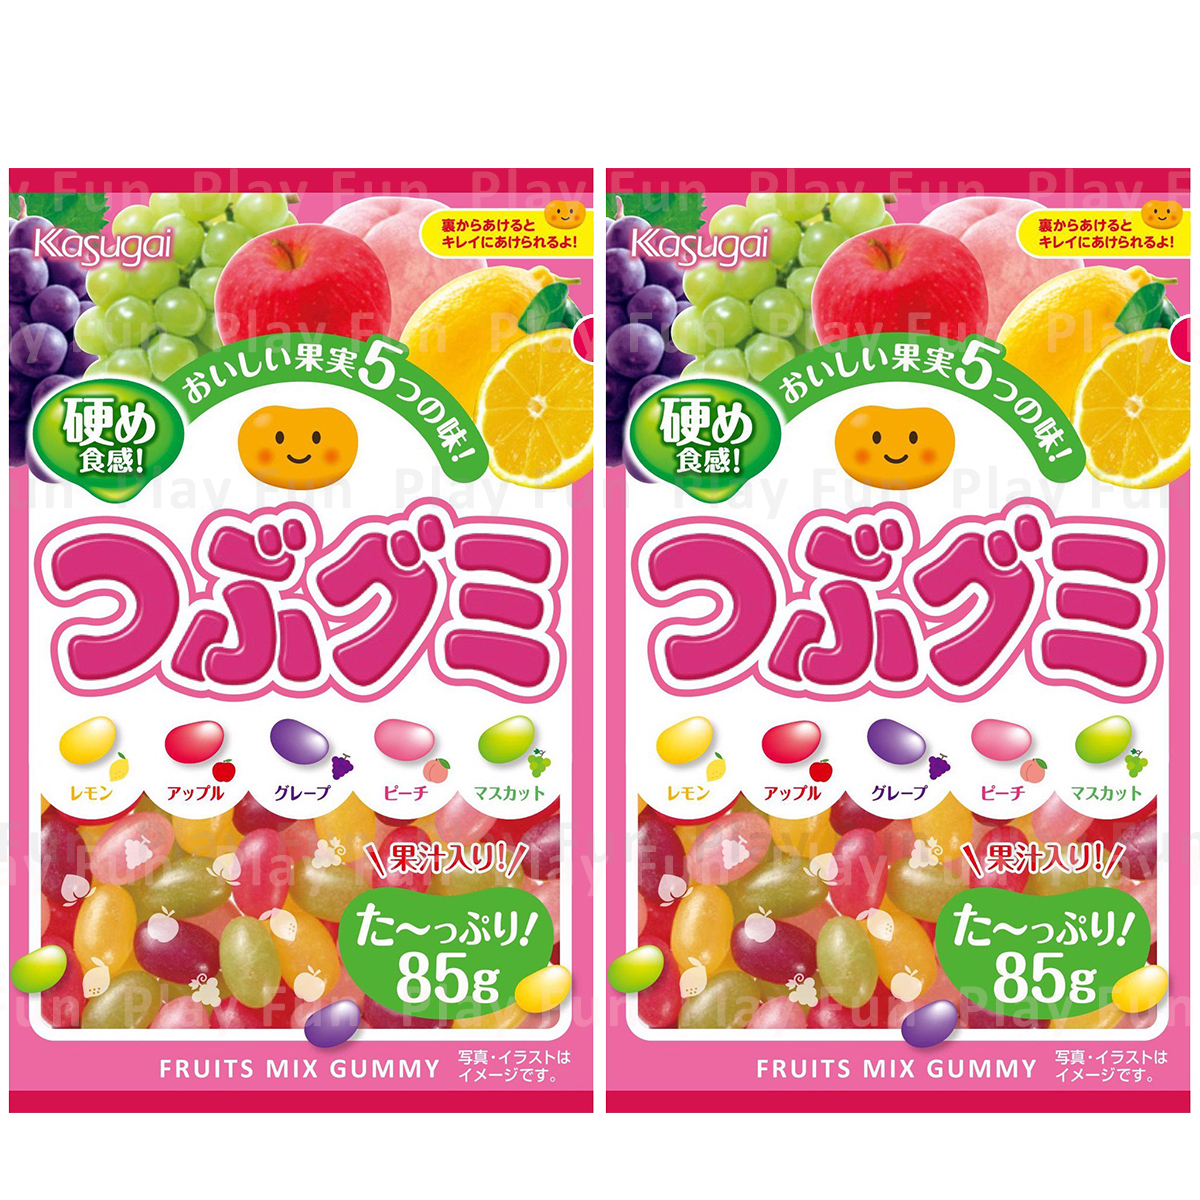 Fruits Mix Gummy 85g  (4901326040151_2)